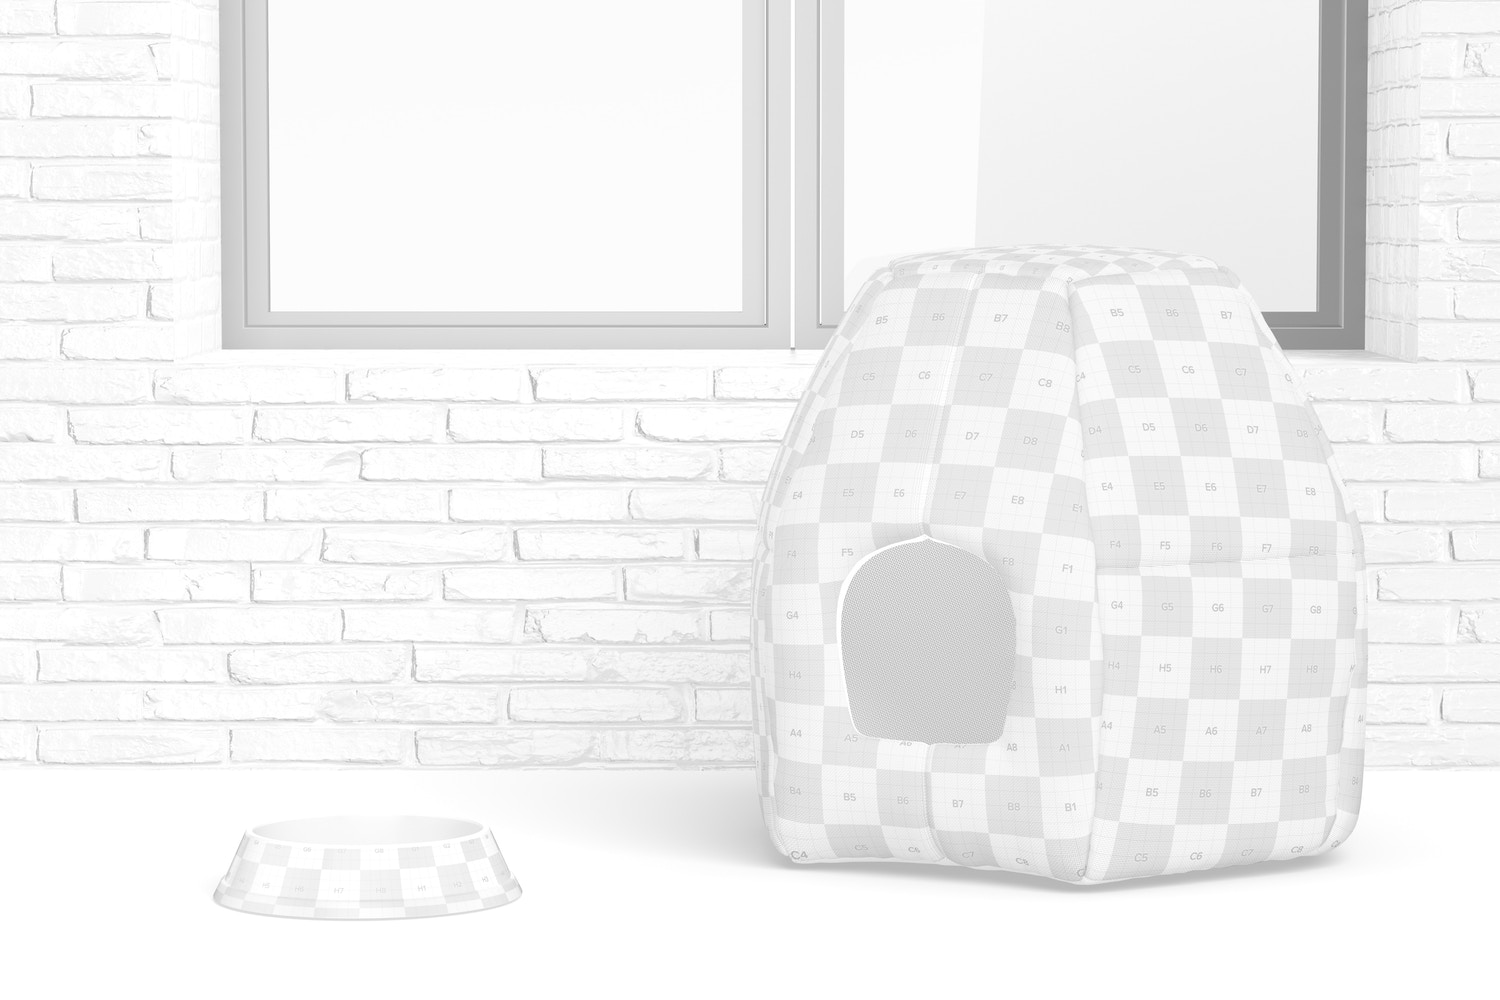 Pet House Mockup, Perspective